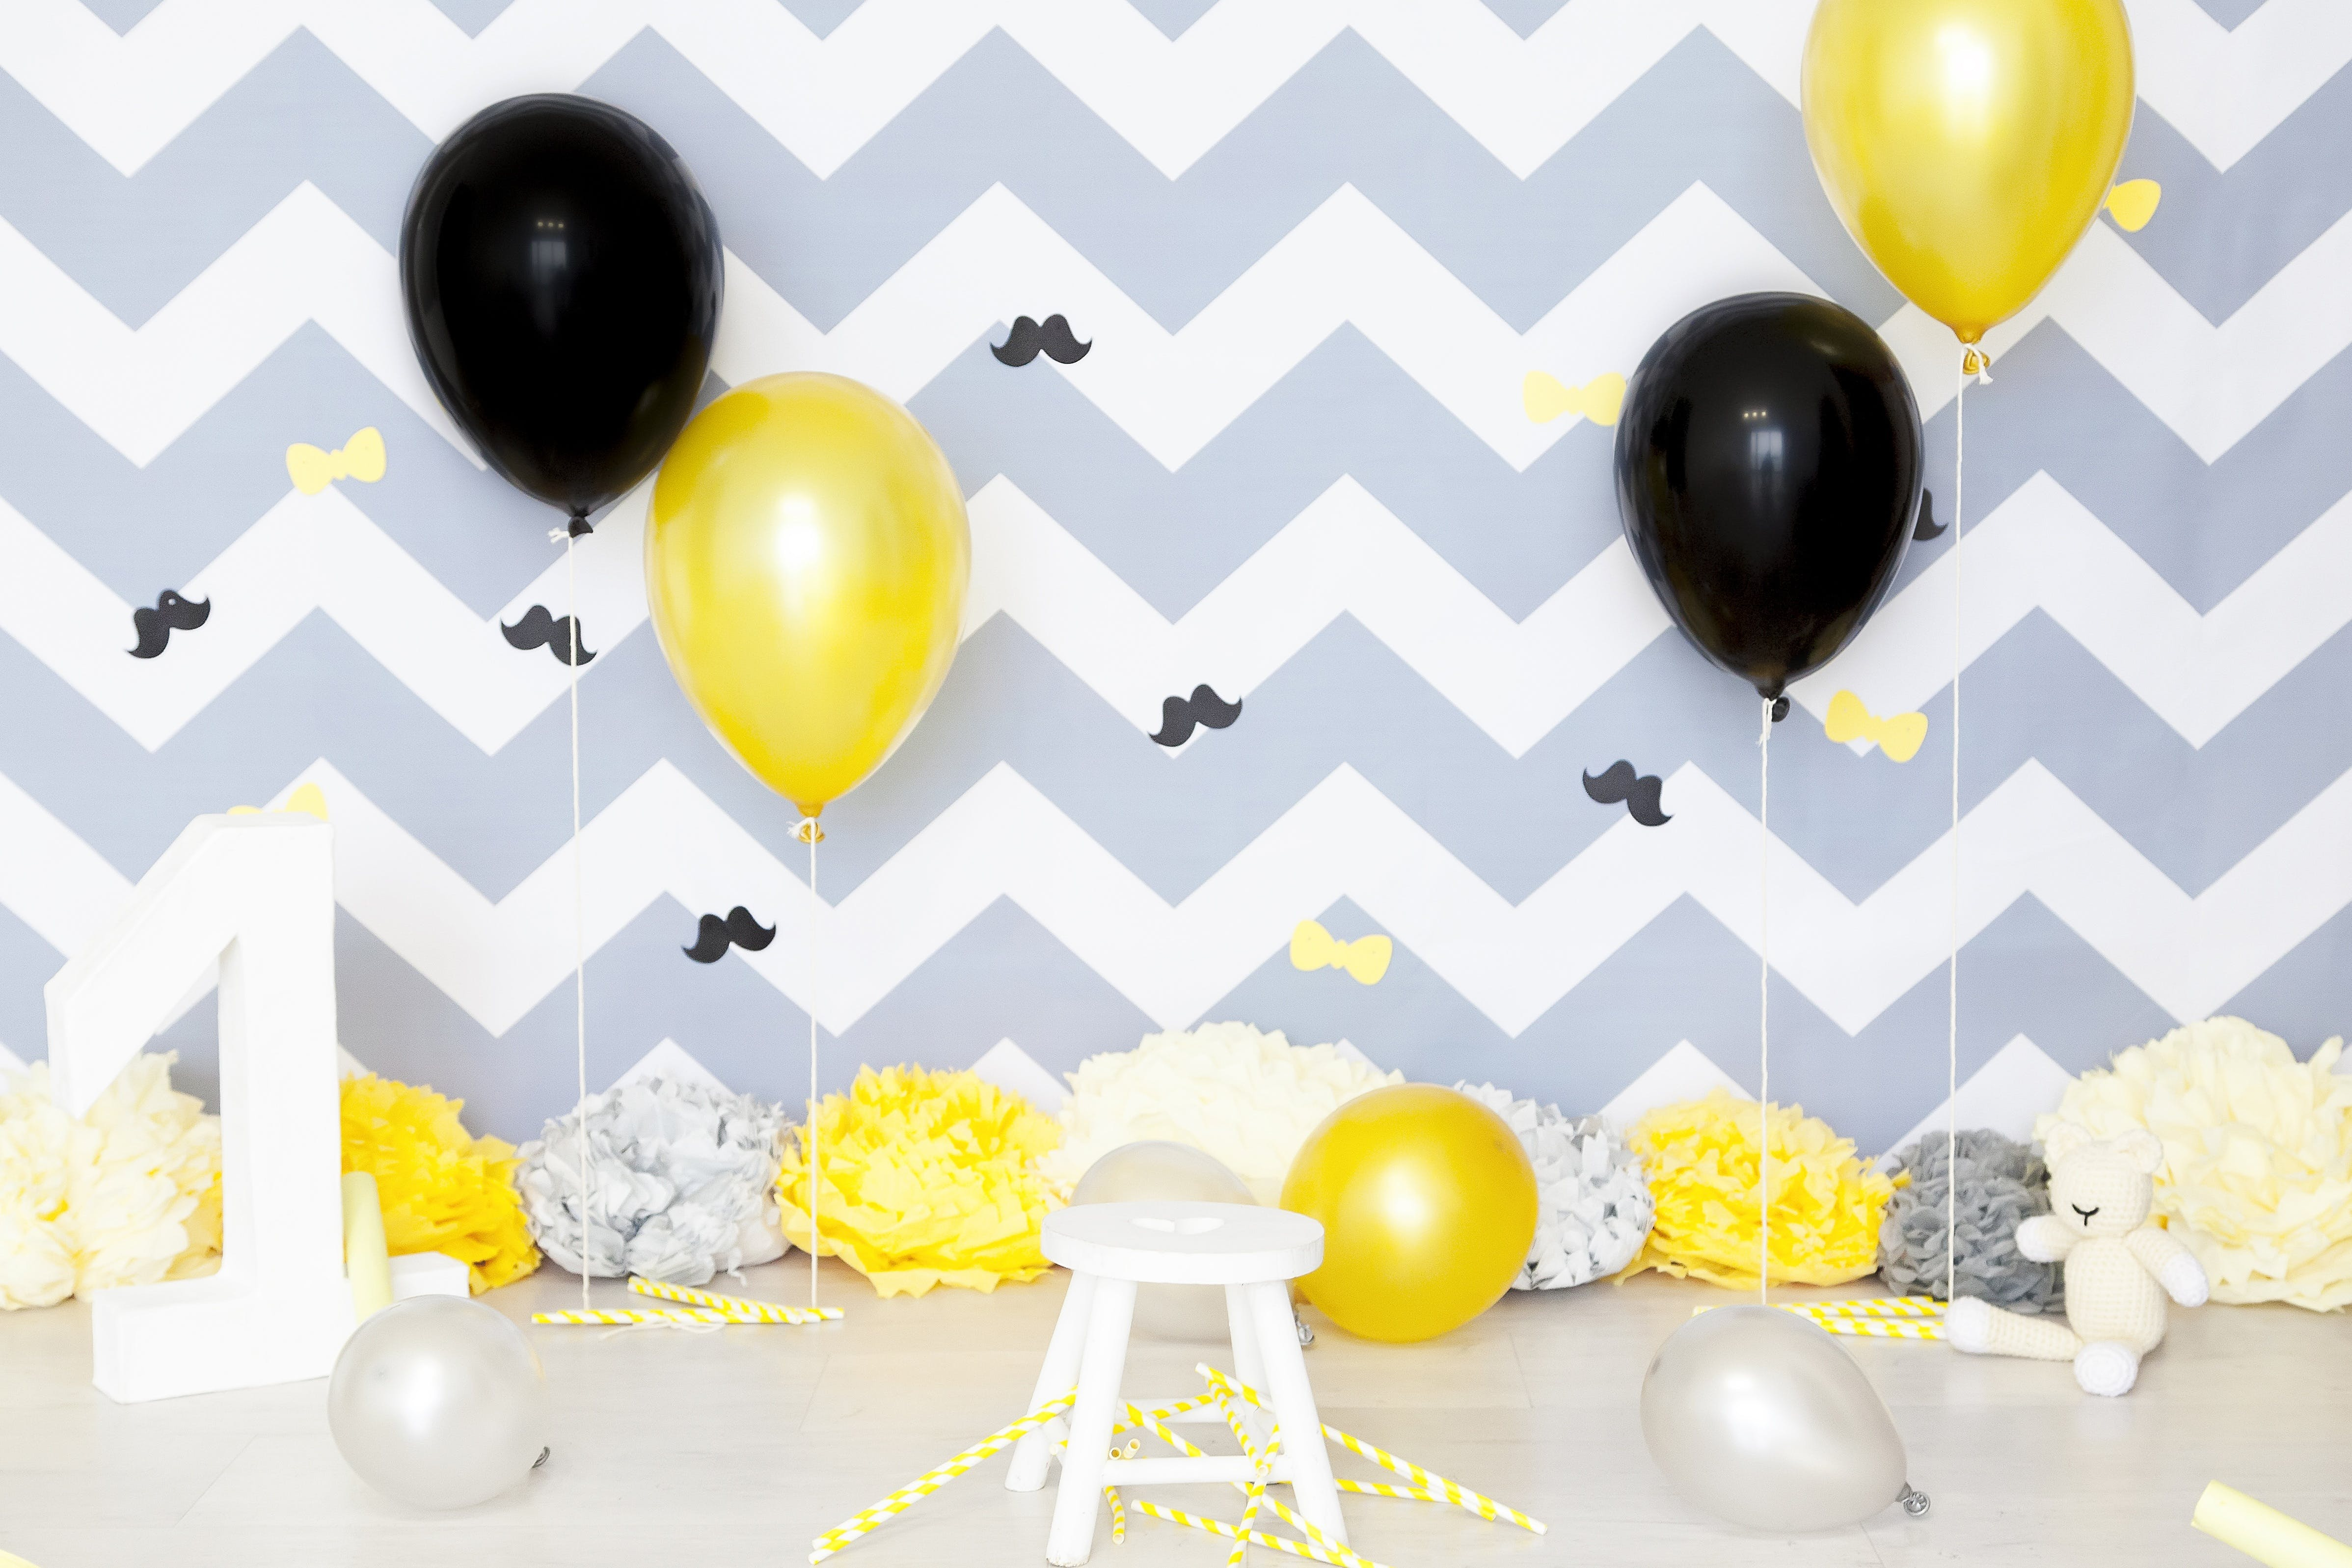 background, balloons, black